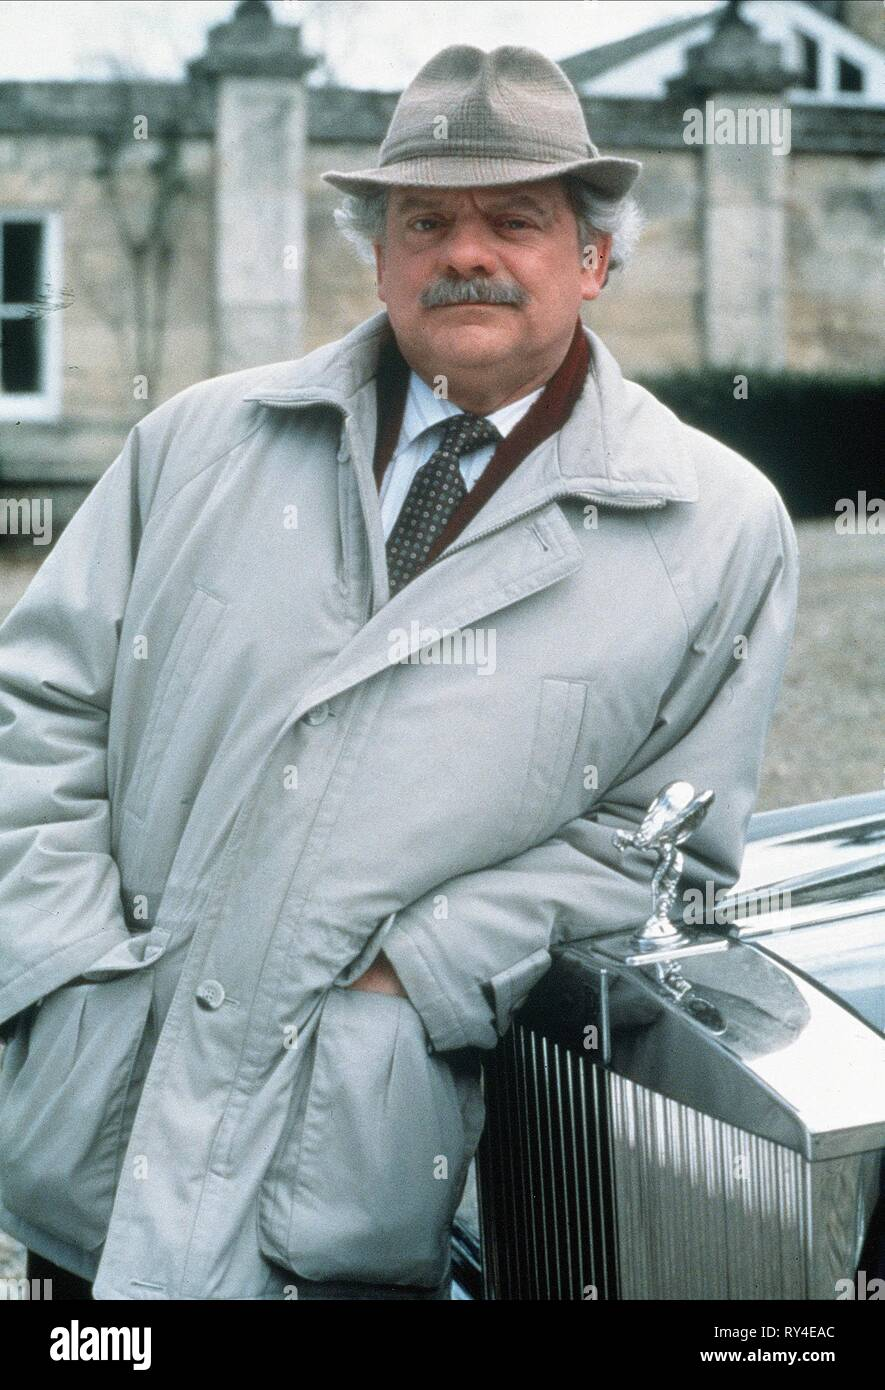 DAVID JASON, A TOUCH OF FROST, 1997 - Stock Image